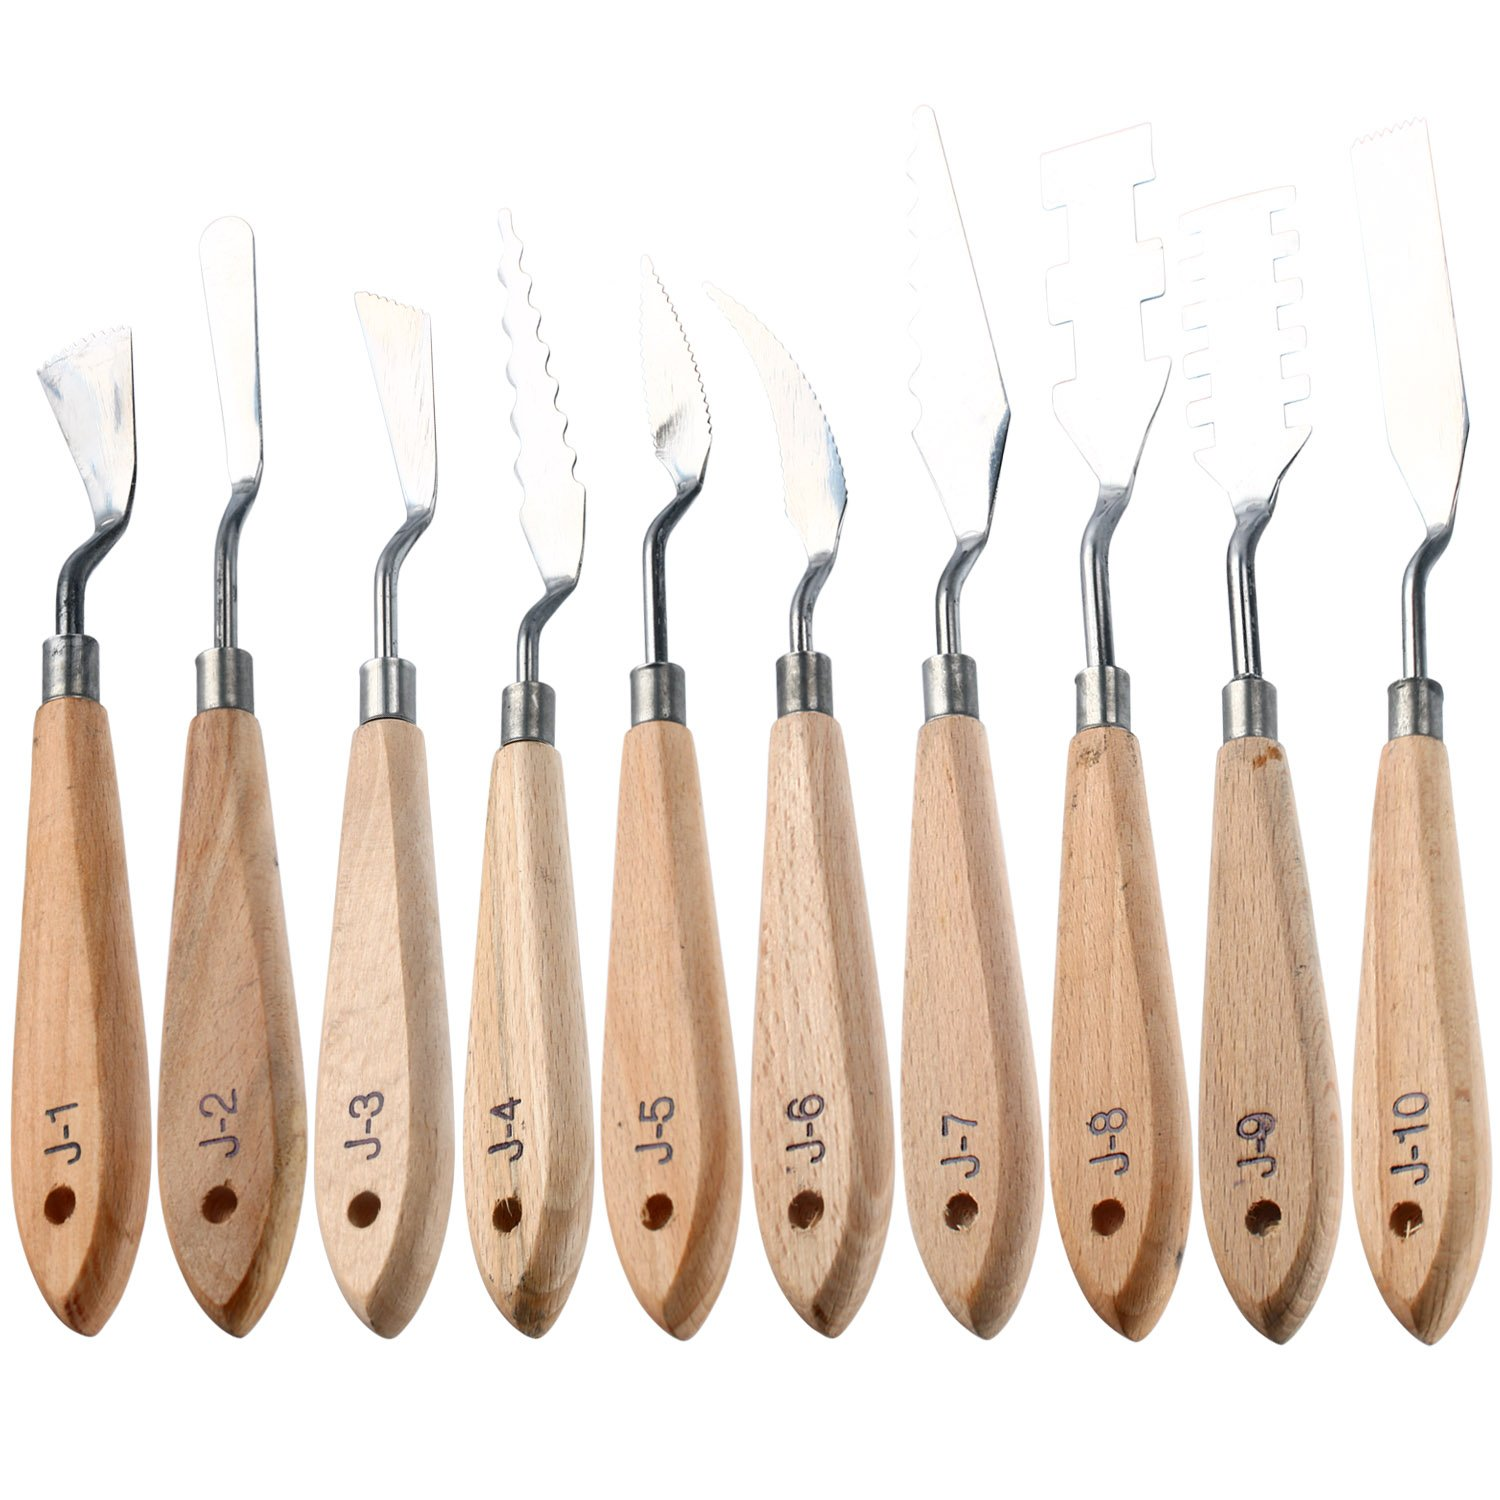 Homend Oil Paint Knives for Artists, 10 Pcs Stainless Steel Painting Knife Set Within Thin and Flexible Spatulas Art Tools for Oil Painting Acrylic Mixing